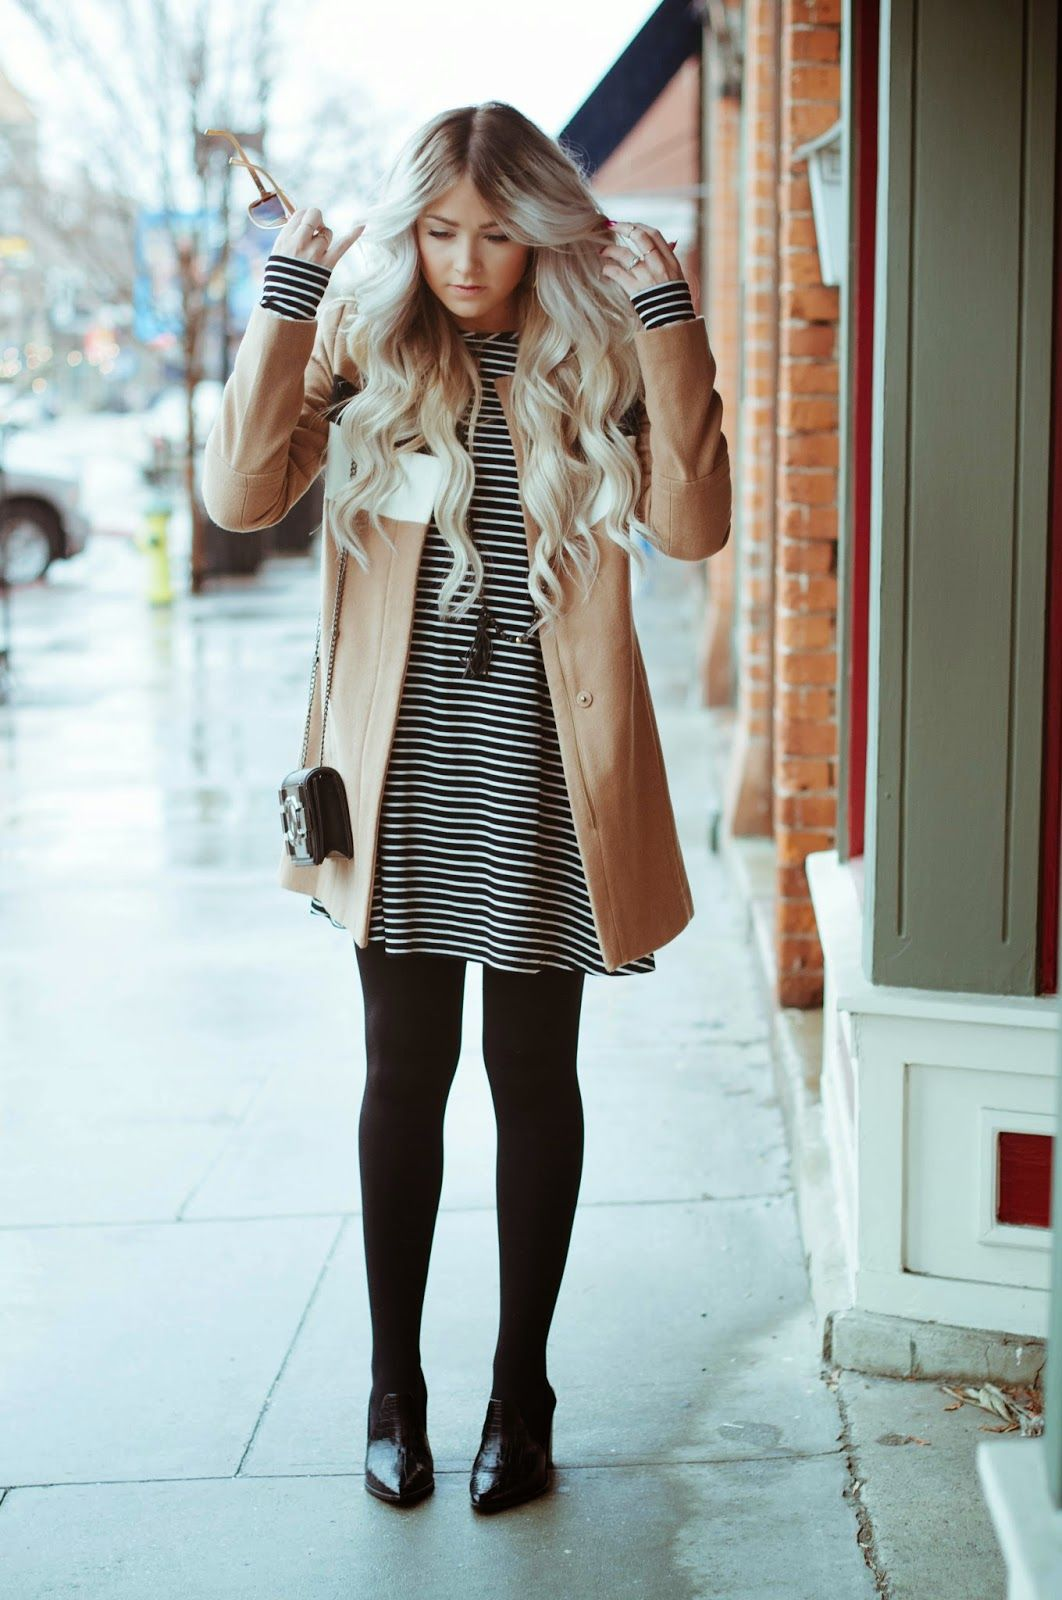 b9228ea00af Winter Fashion Essentials You Need to Have in your Closet | wardrobe ...